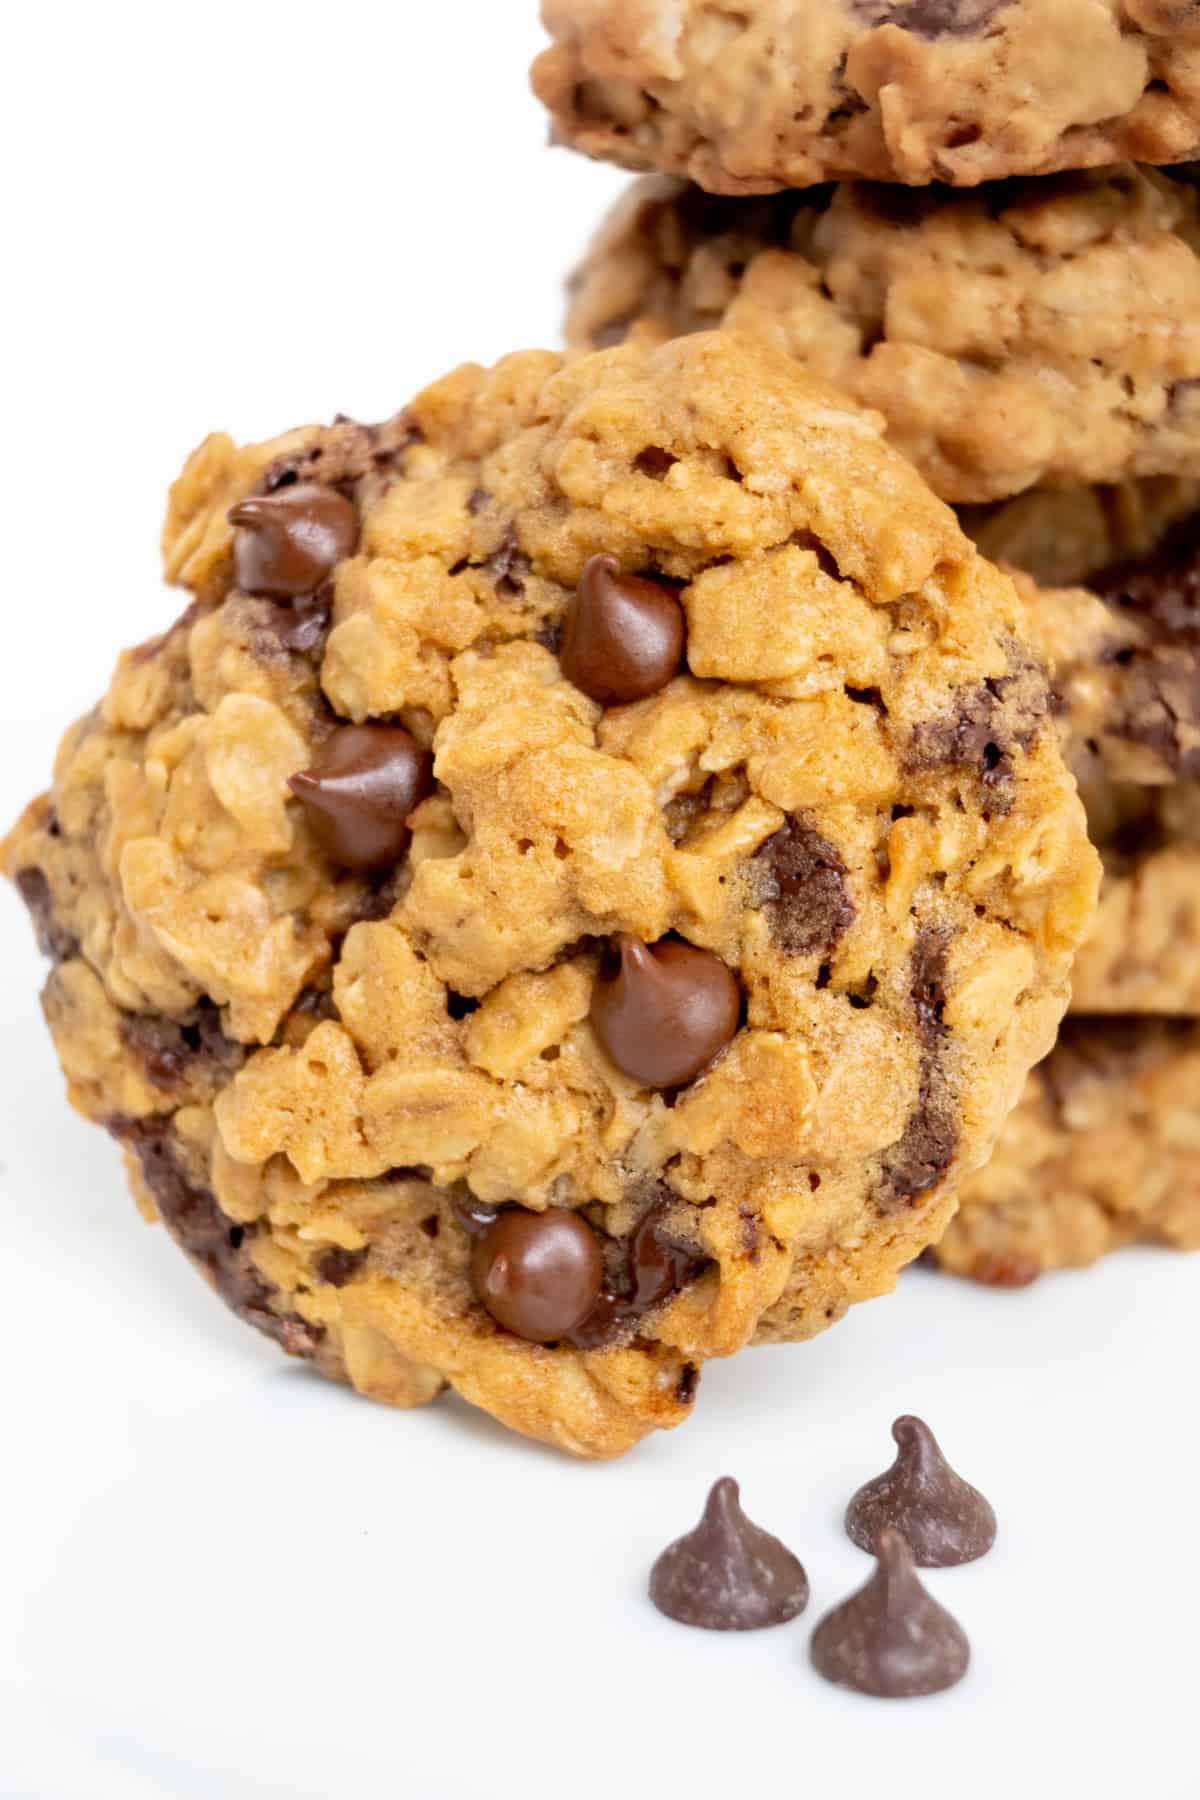 A crunchy and golden oatmeal cookie topped with chocolate chips leaning against a stack of more cookies.